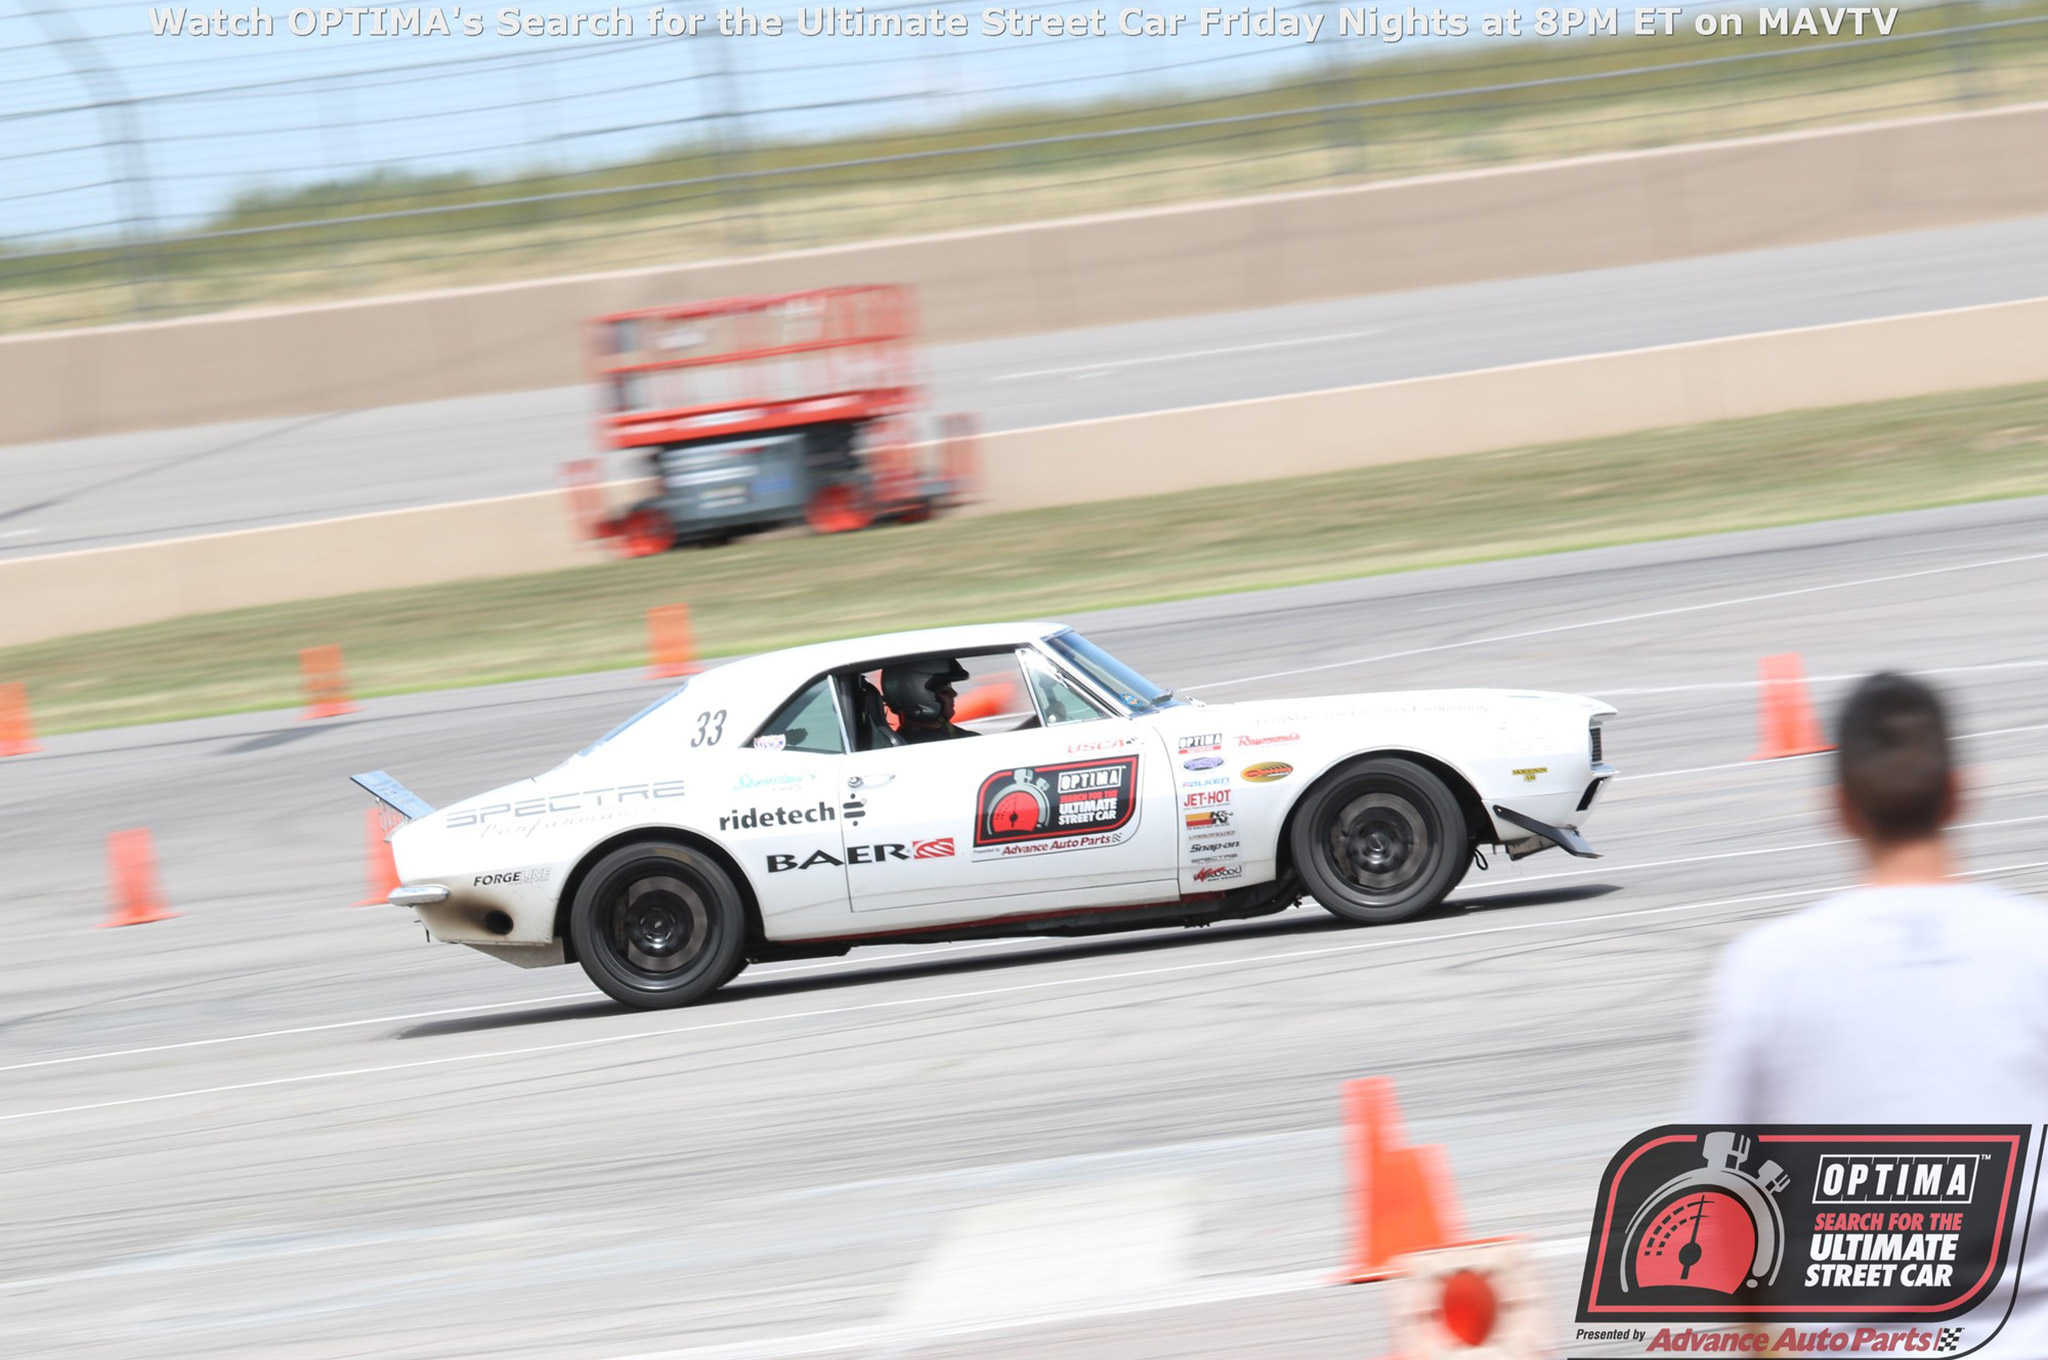 With Rozelle having already qualified for Las Vegas at the Thunderhill event, the GTV invitation went to Second Place finisher James Shipka and his 1967 Camaro.